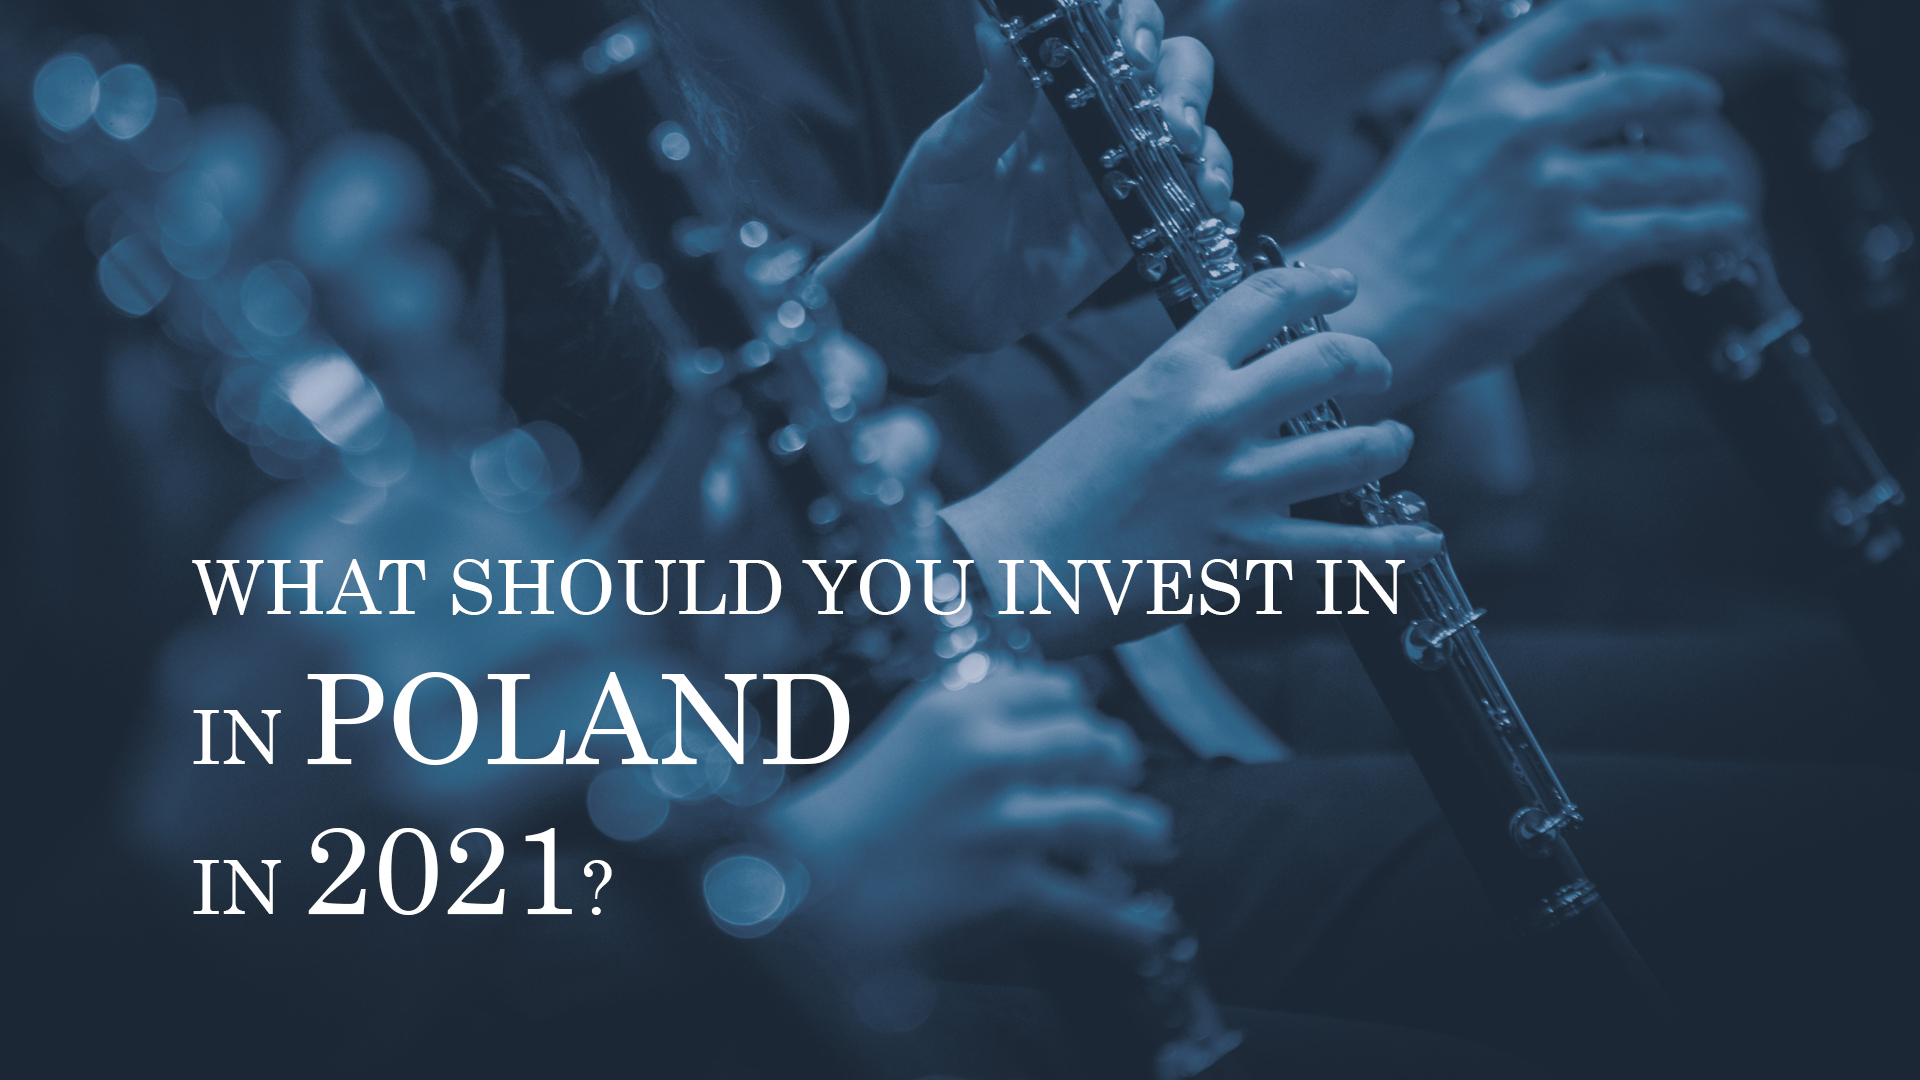 WHAT SHOULD YOU INVEST IN IN POLAND IN 2021?